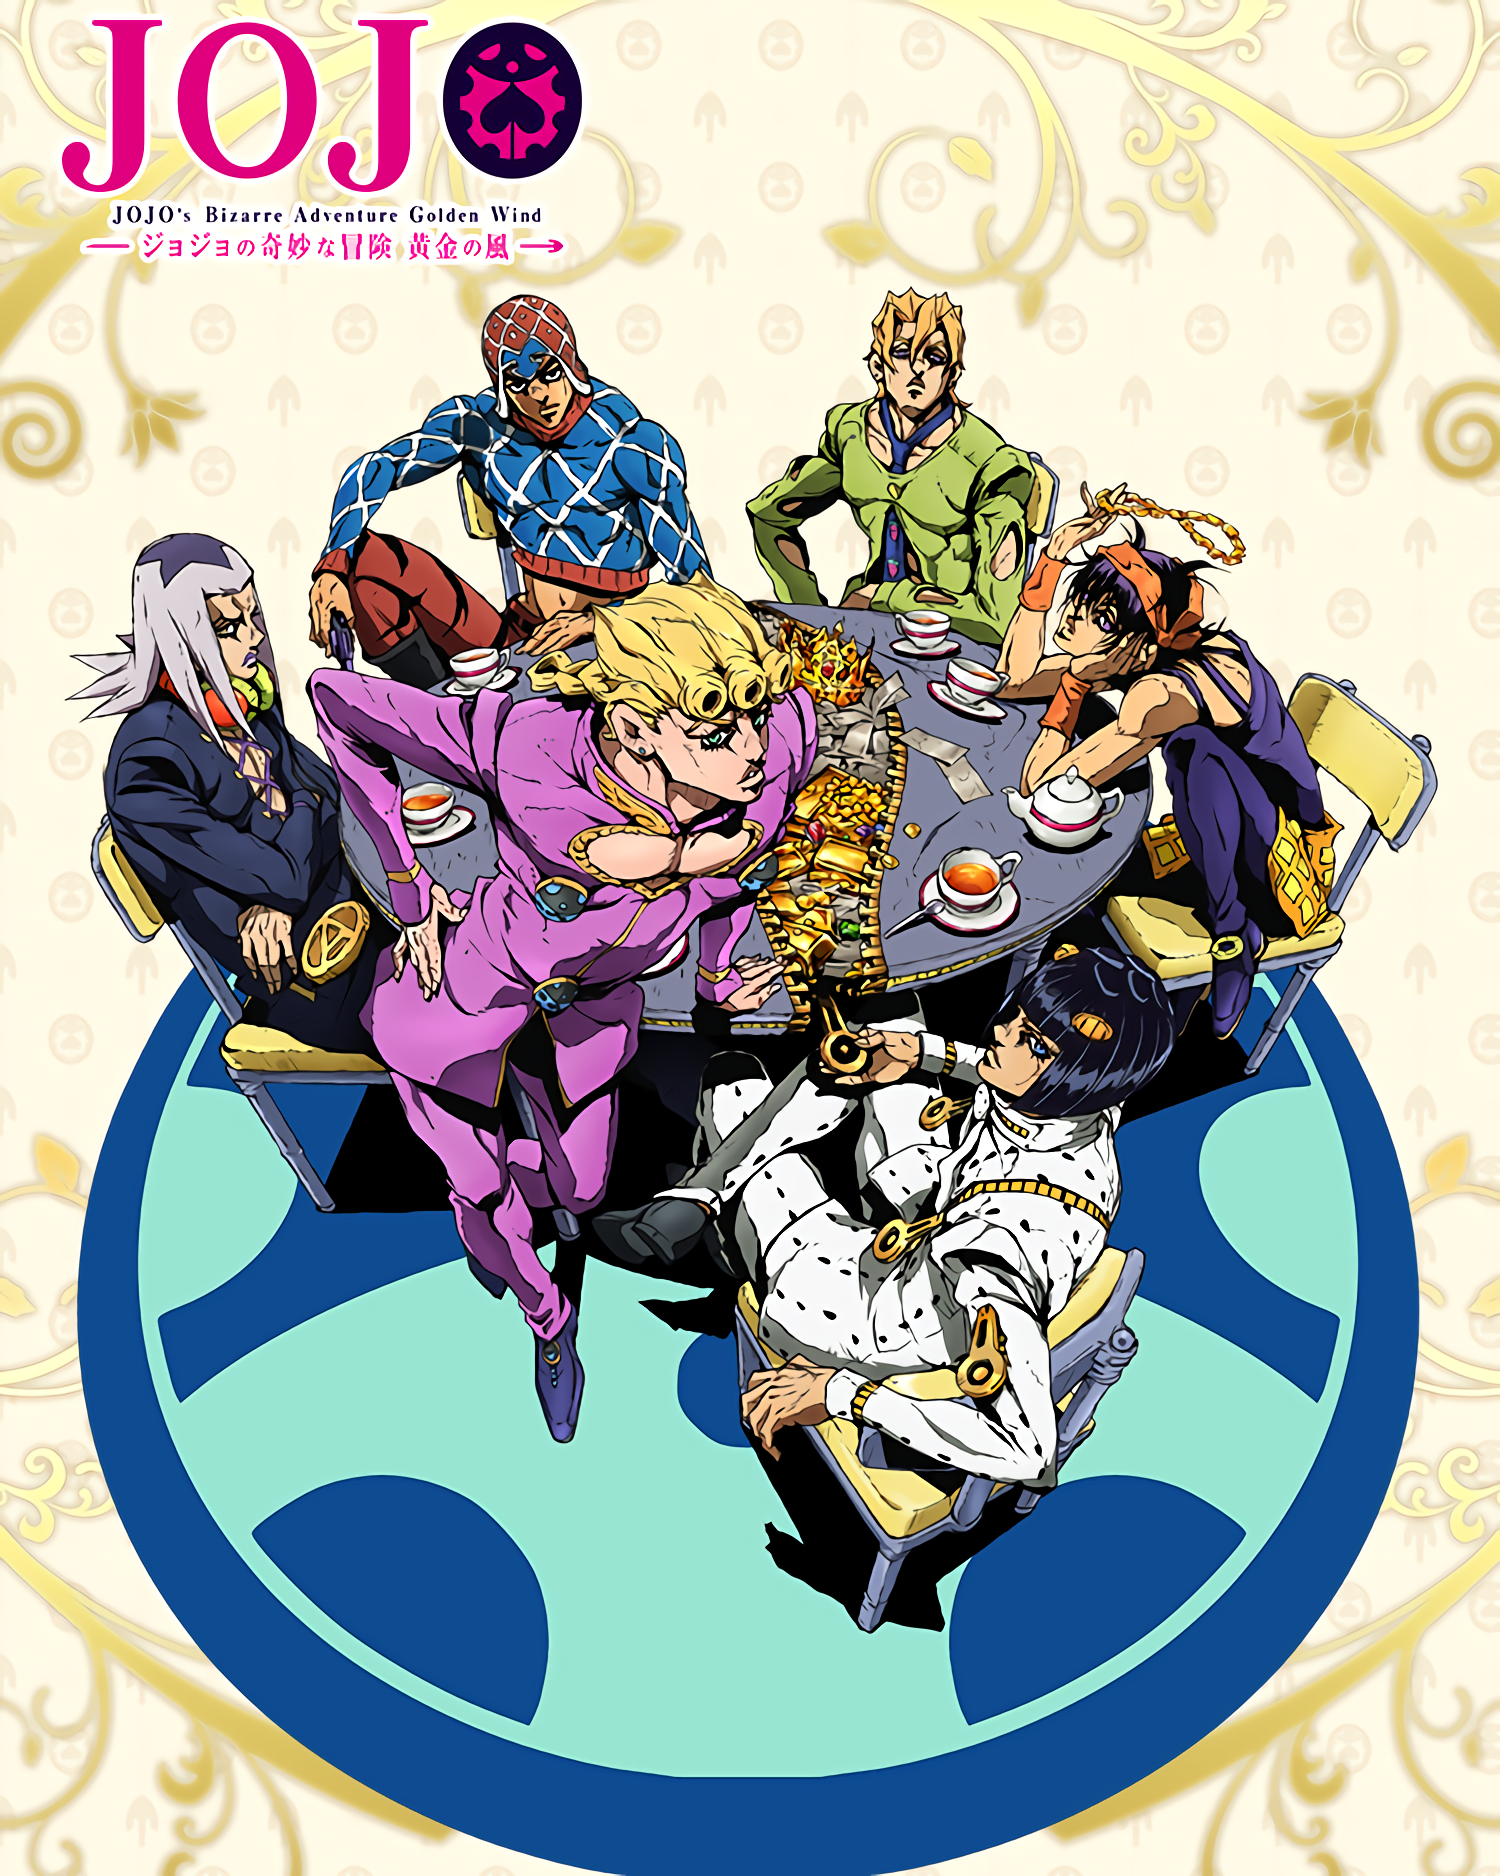 Image result for jojo's bizarre adventure golden wind